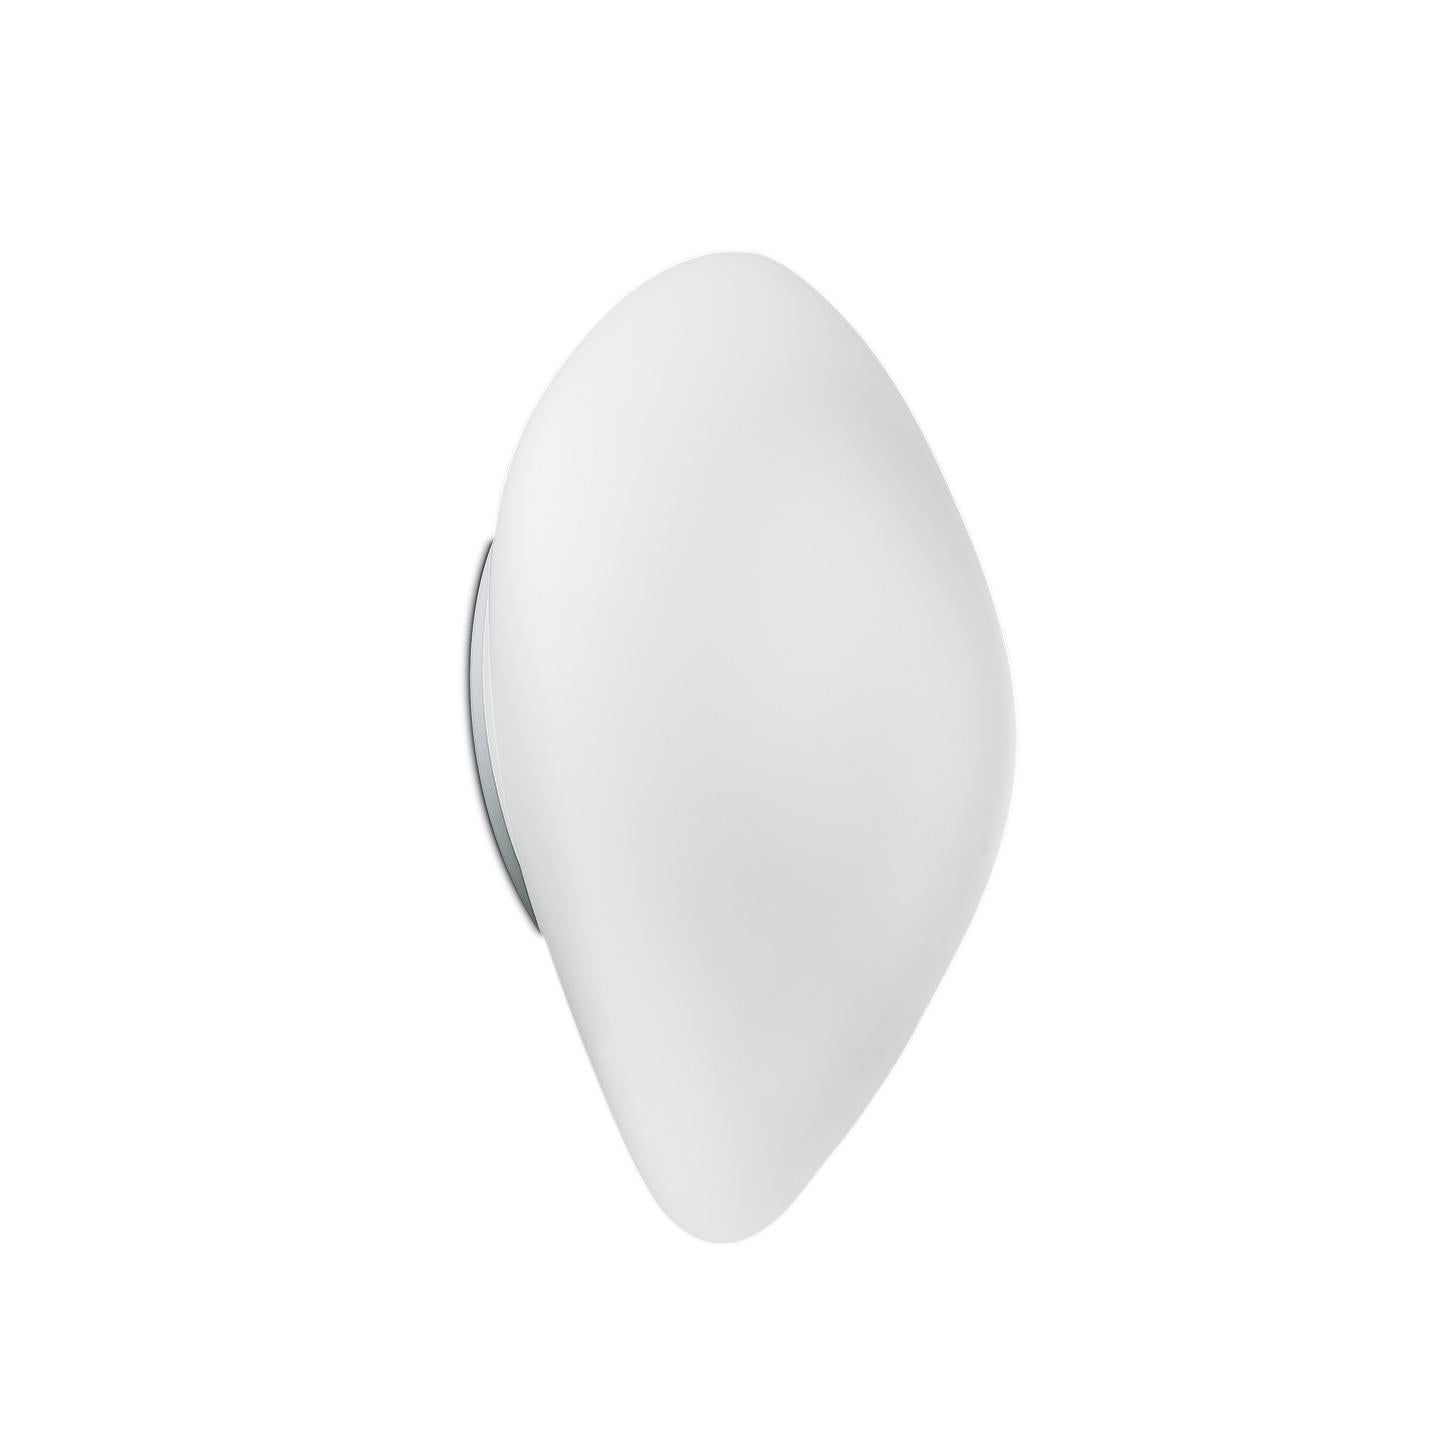 Leucos Stone P-PL Wall or Ceiling Light in Satin White by Design Lab